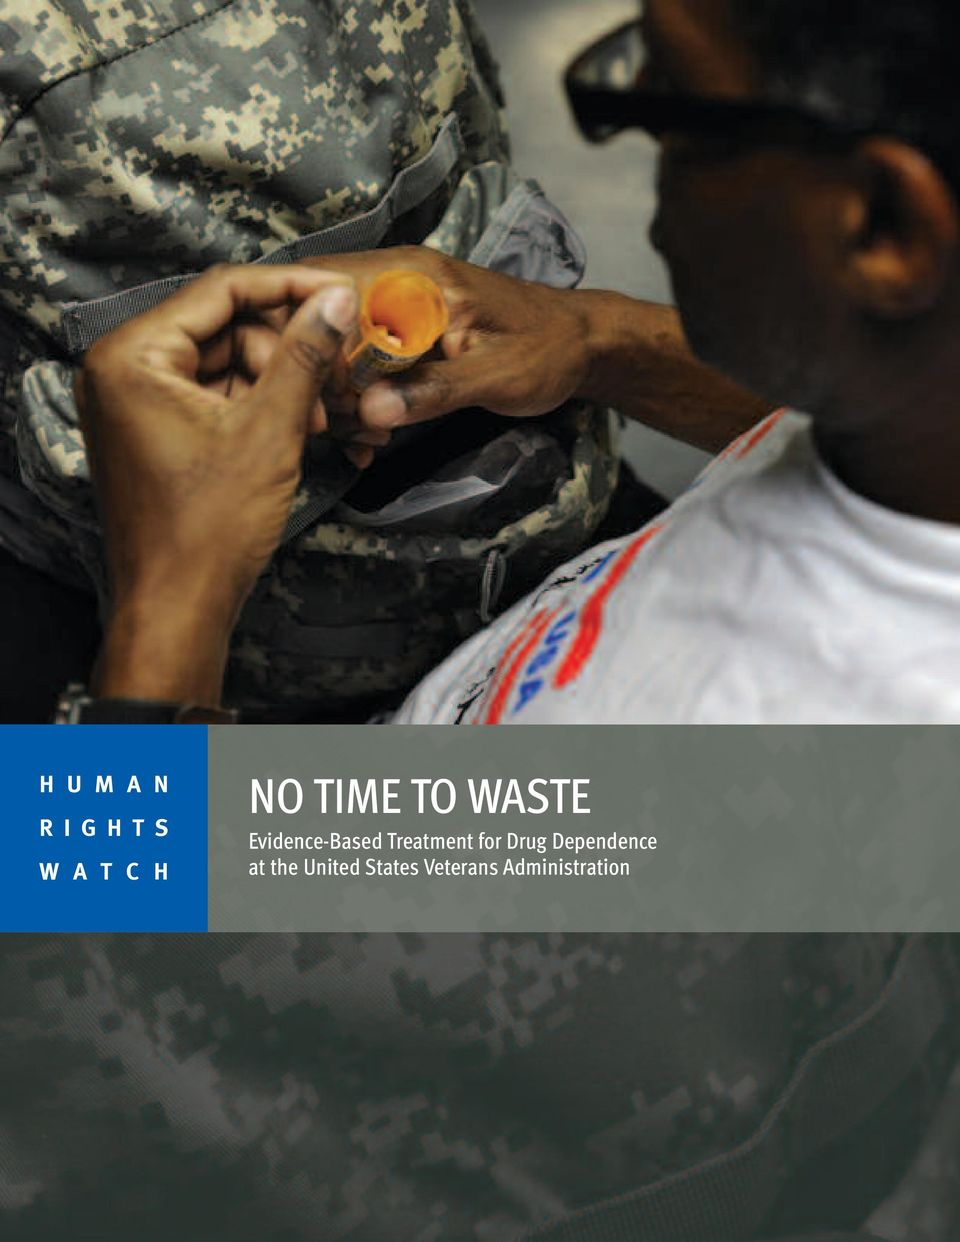 Treatment for Drug Dependence at